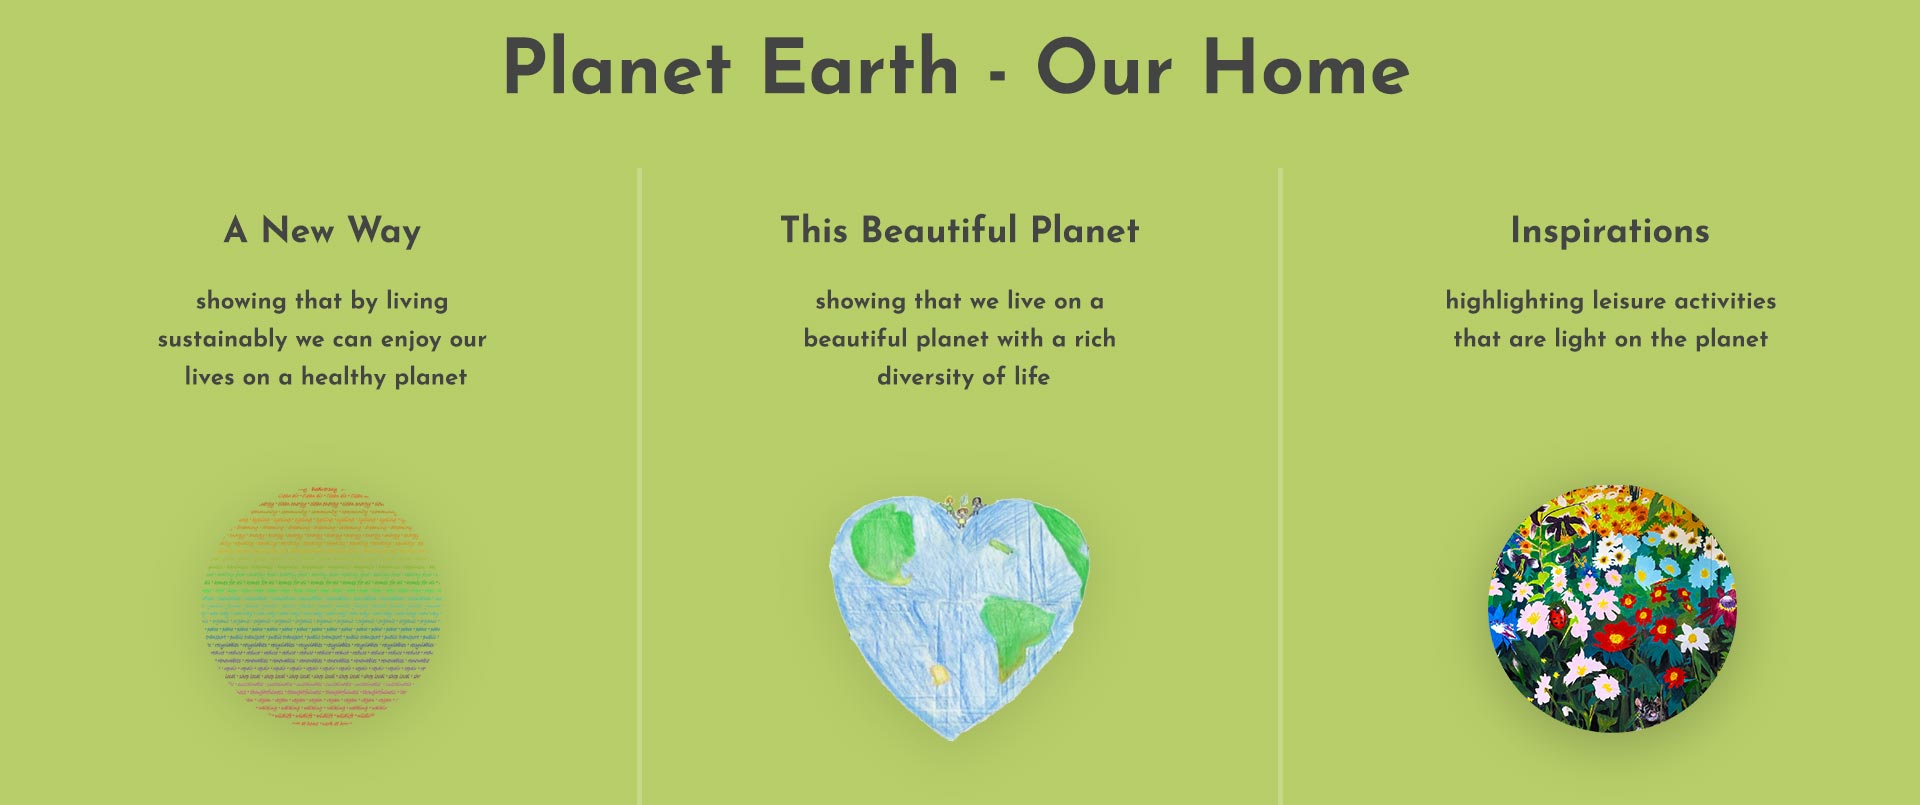 Planet Earth - Our Home